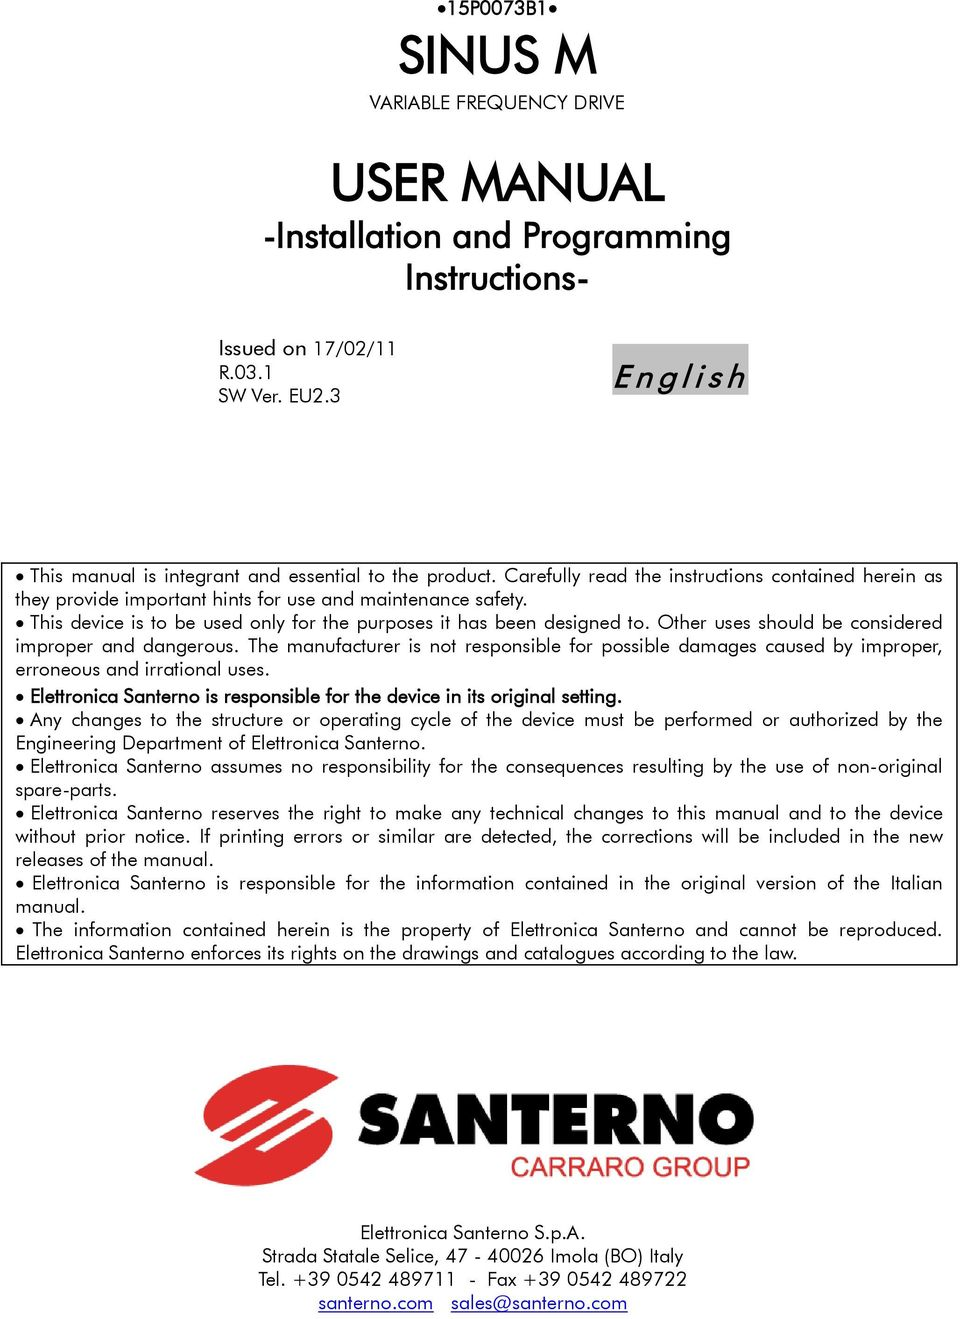 Sinus M User Manual Installation And Programming Instructions Pdf Vfd Drives Wiring Diagram This Device Is To Be Used Only For The Purposes It Has Been Designed